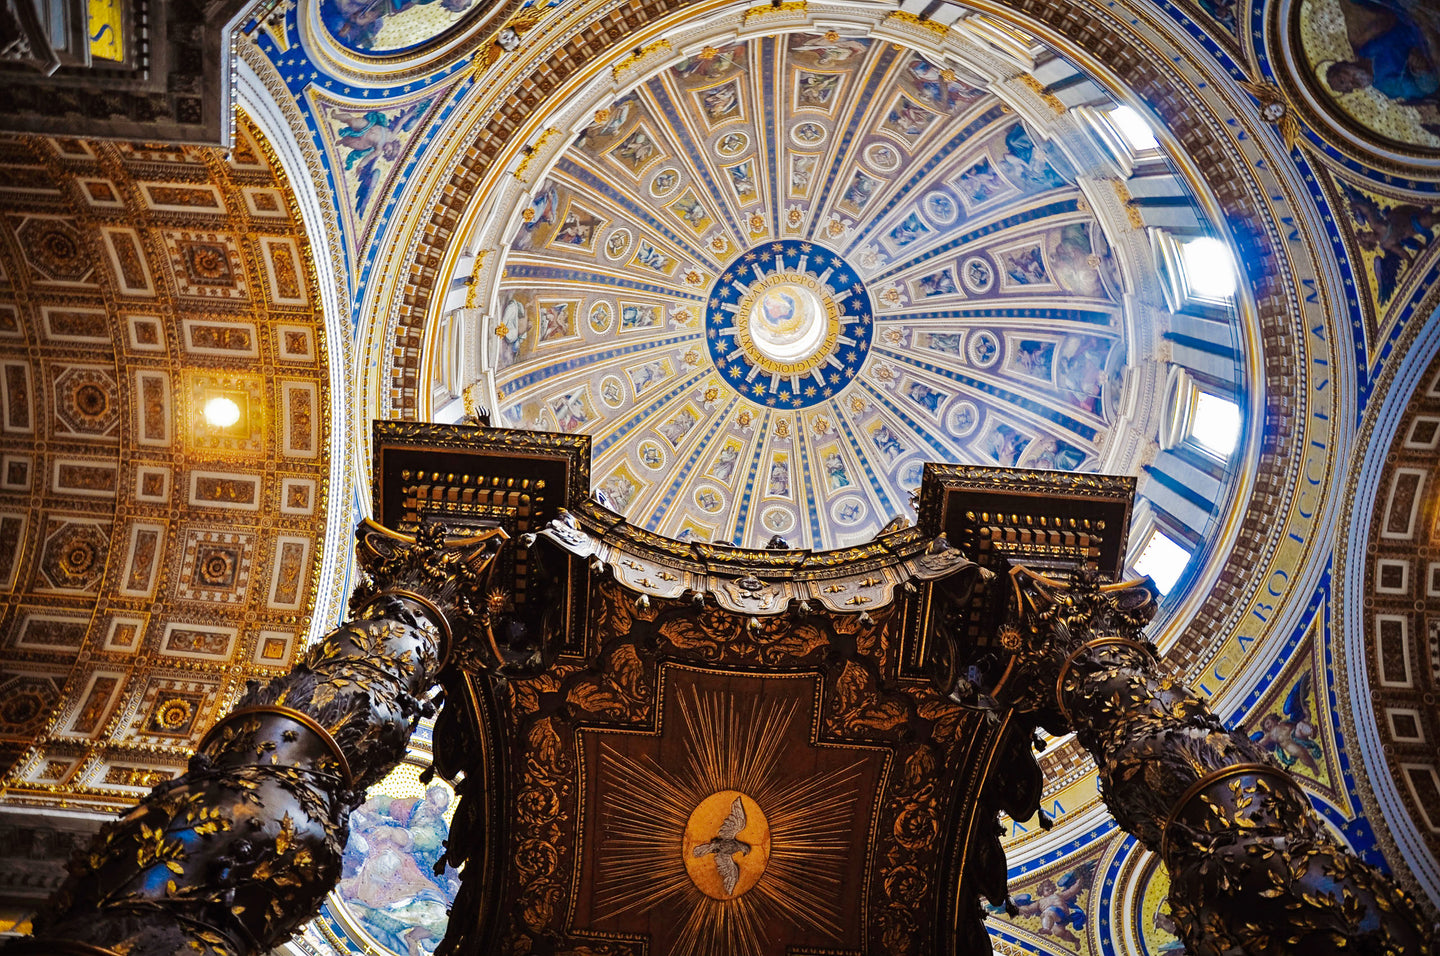 Dome of the Saint Peter's Basilica (Vatican City)